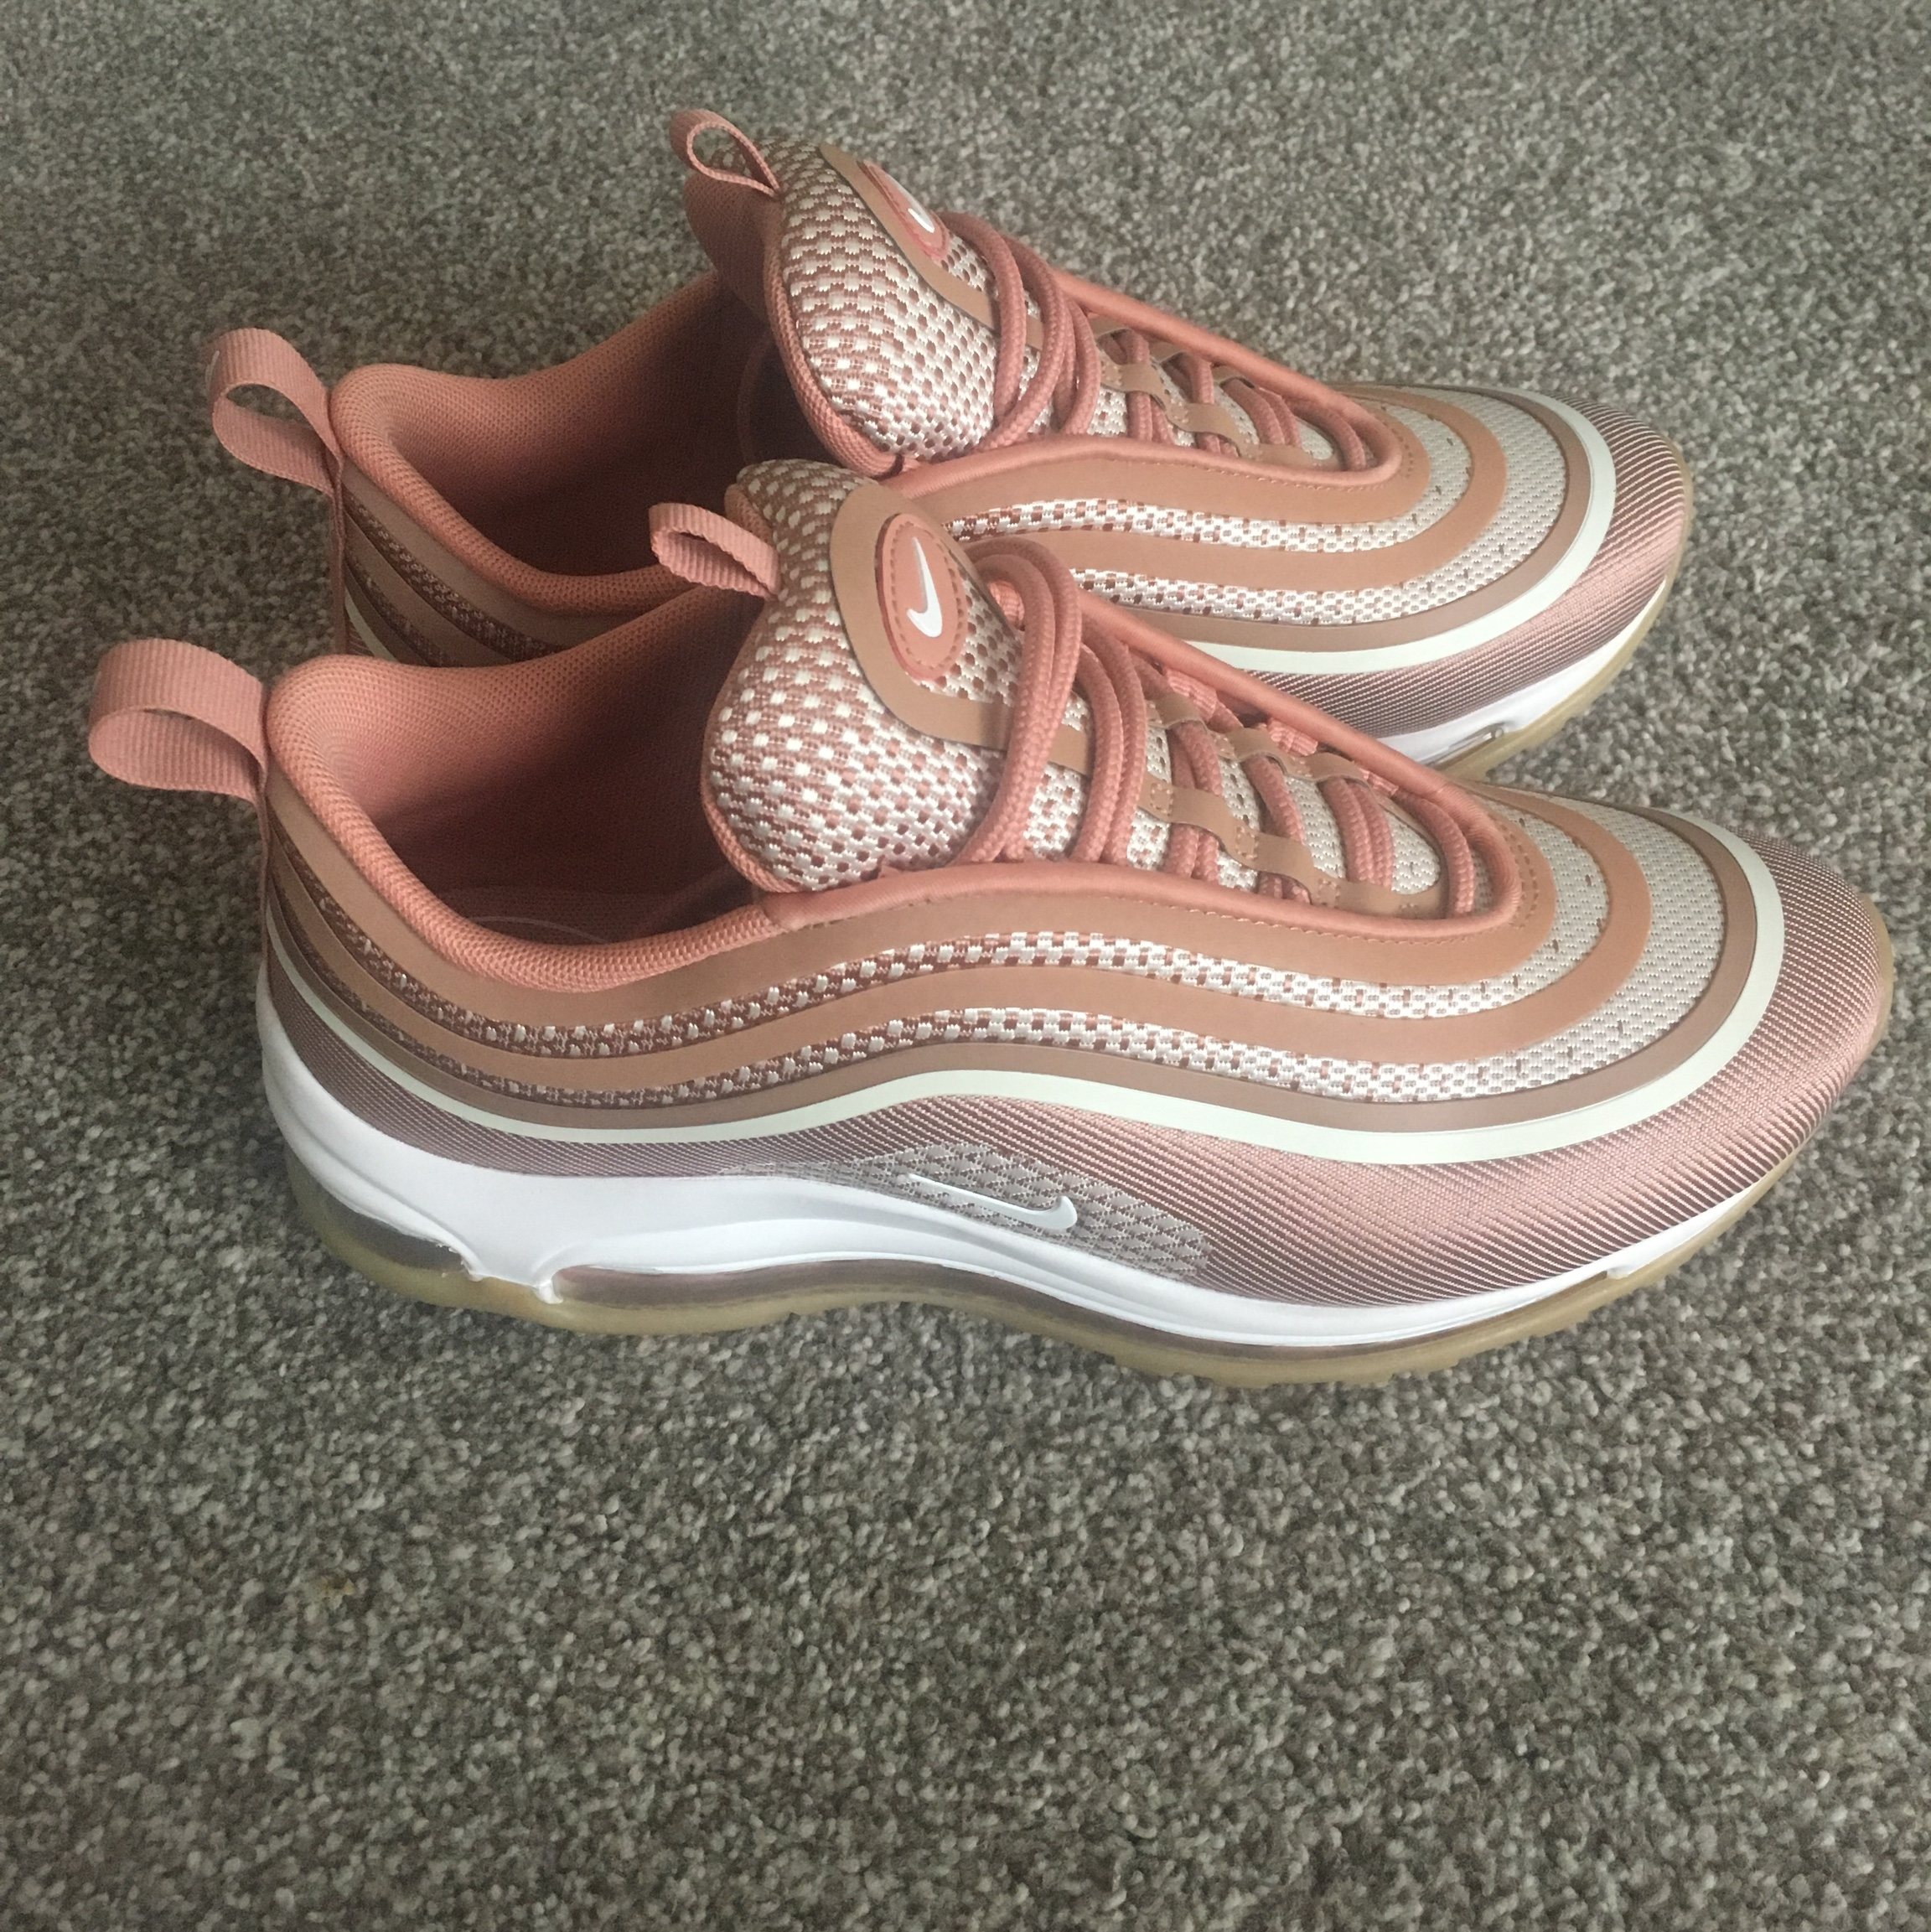 Price Reduced Today Nike Air Max 97 Rose Gold